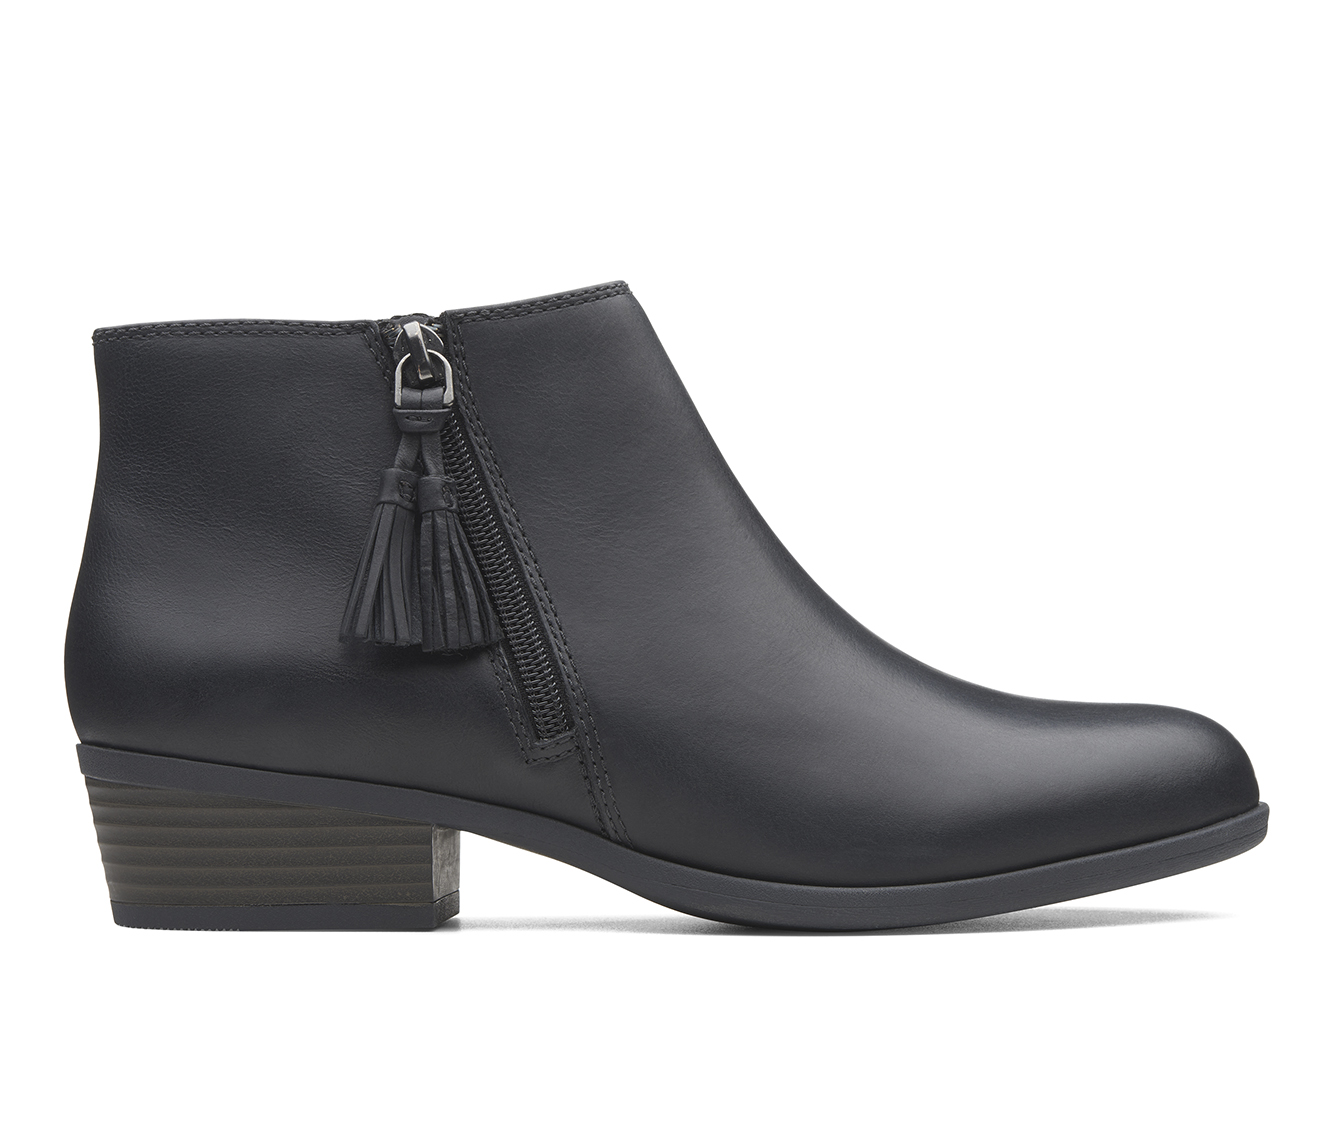 Clarks Addiy Terri Women's Boots (Black - Leather)